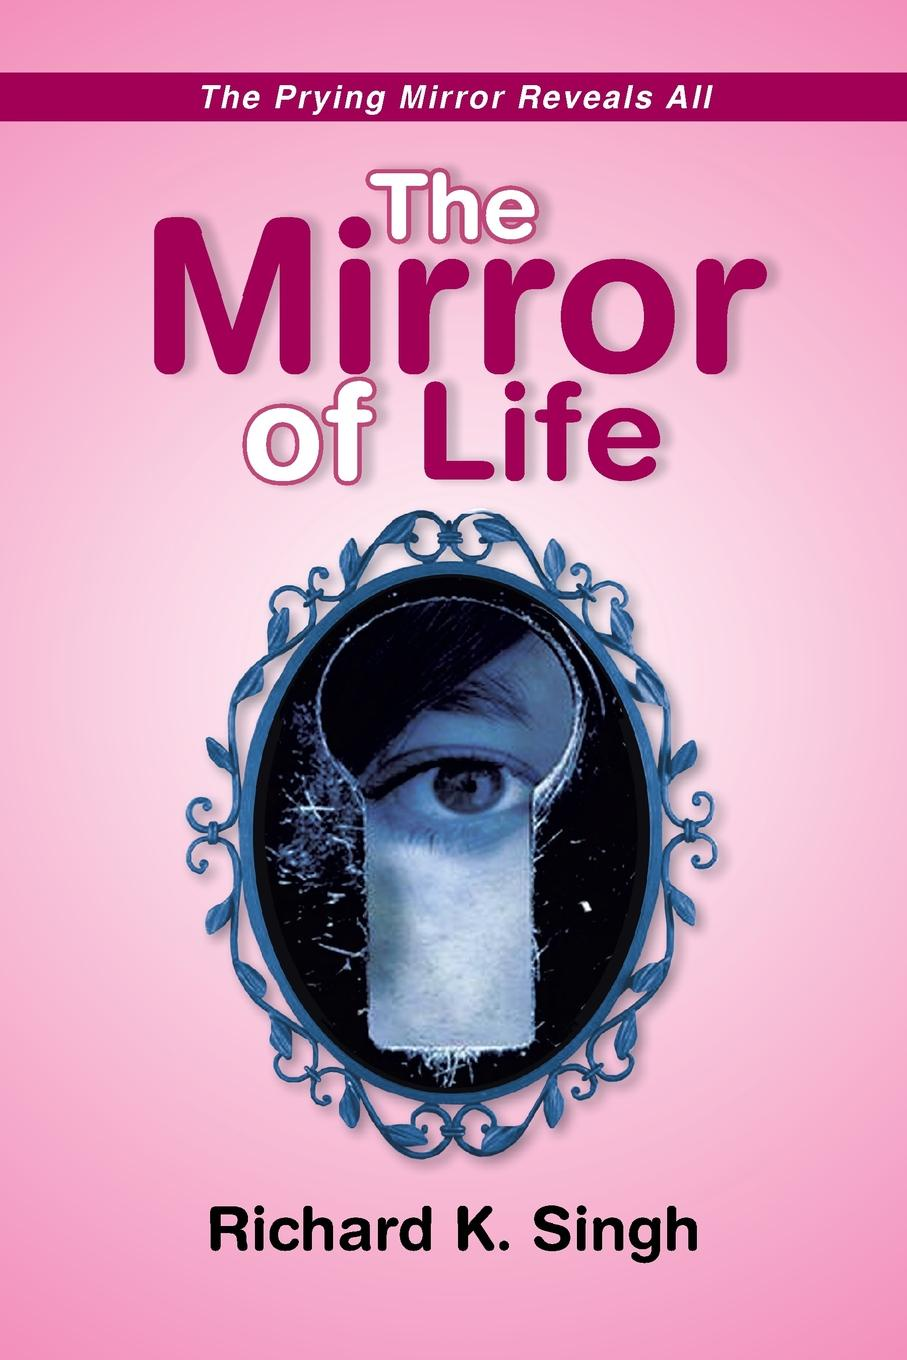 Richard K. Singh The Mirror of Life -The Prying Mirror Reveals All. The Prying Mirror Reveals All the diversity of iceland two color mirror dichroic mirror gem identification